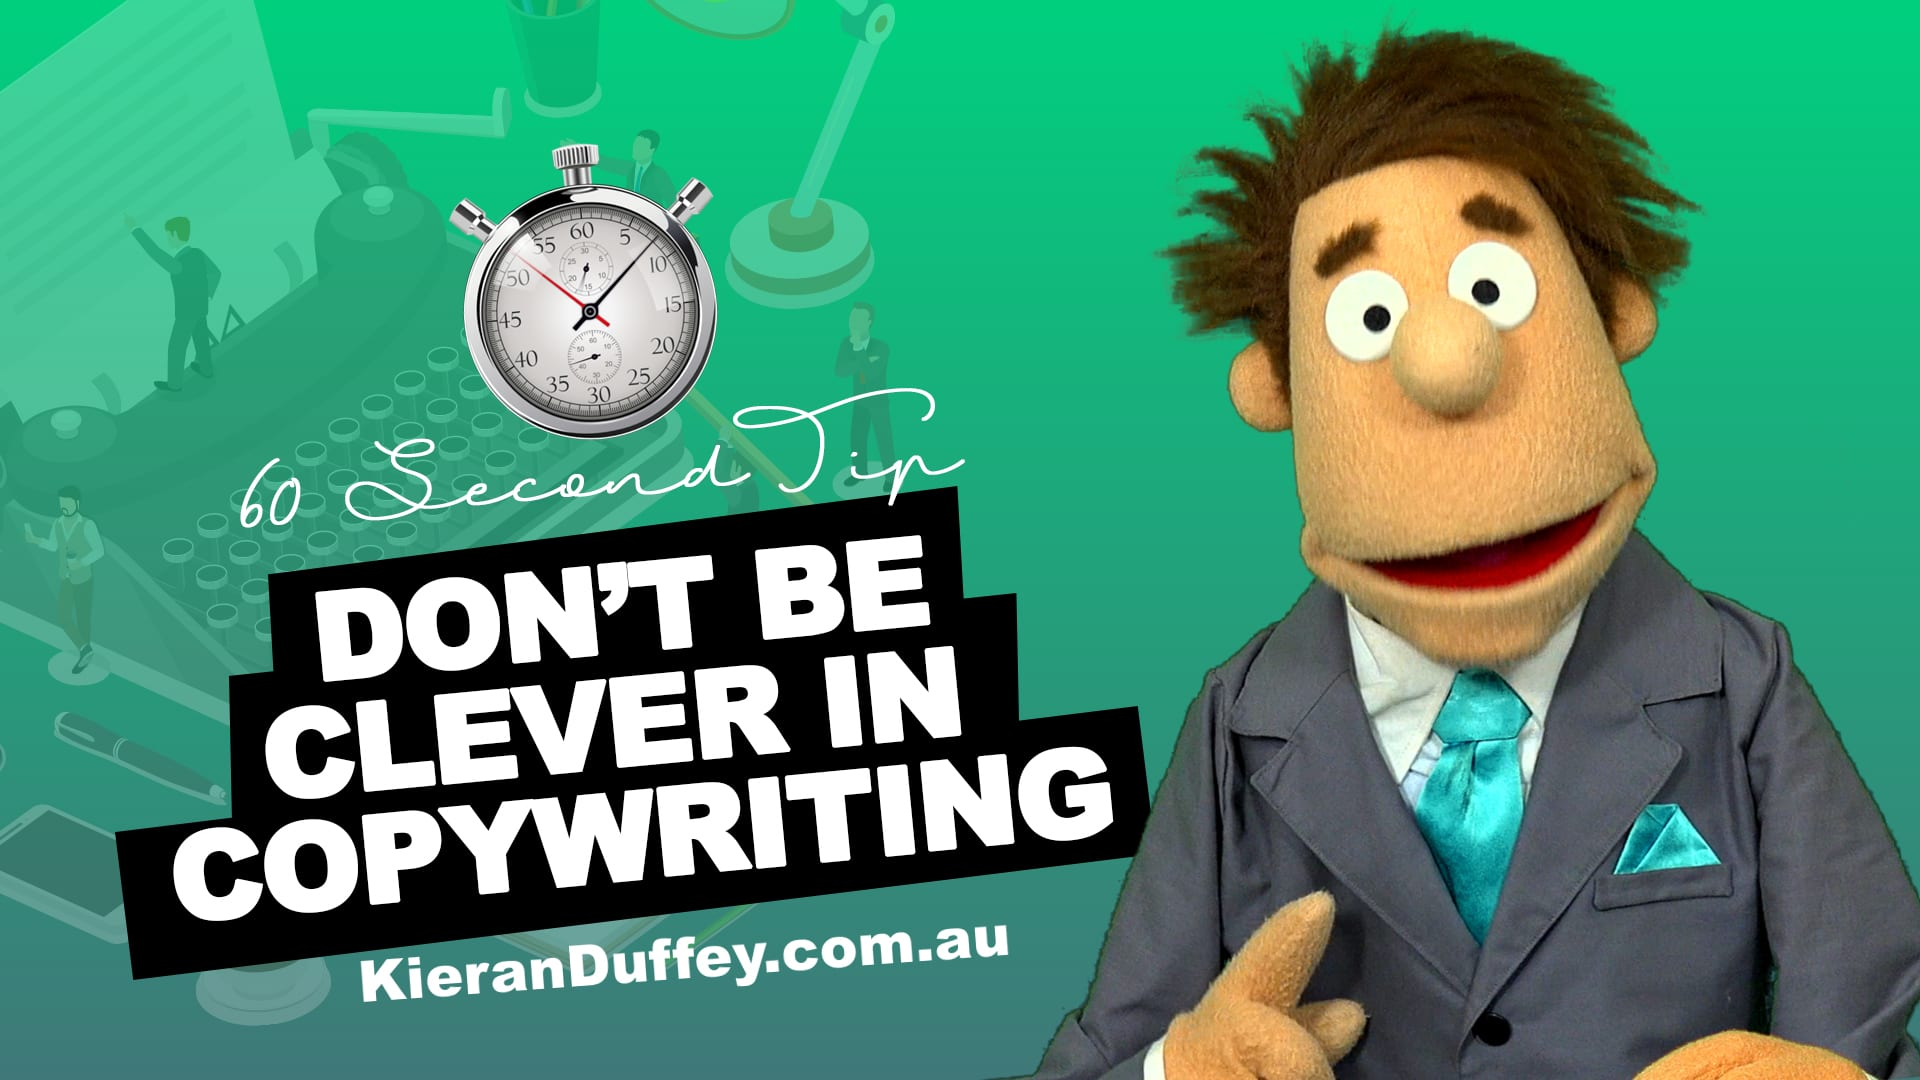 Video explaining why to avoid being clever in copywriting